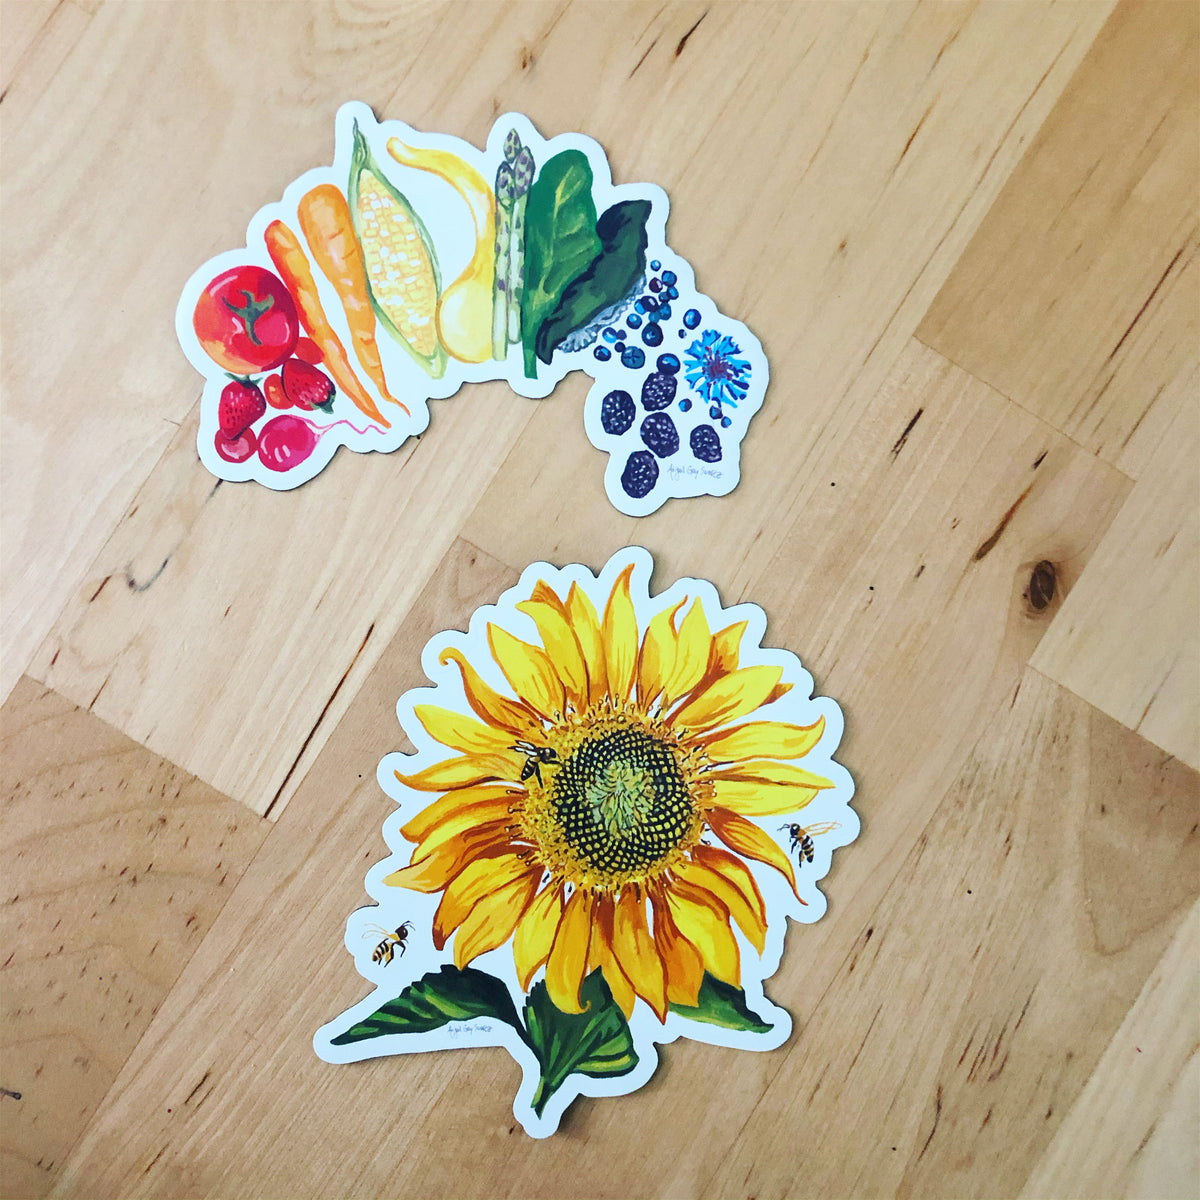 Pollinator Parade, sunflower, floral MAGNET - Stickers & Magnets